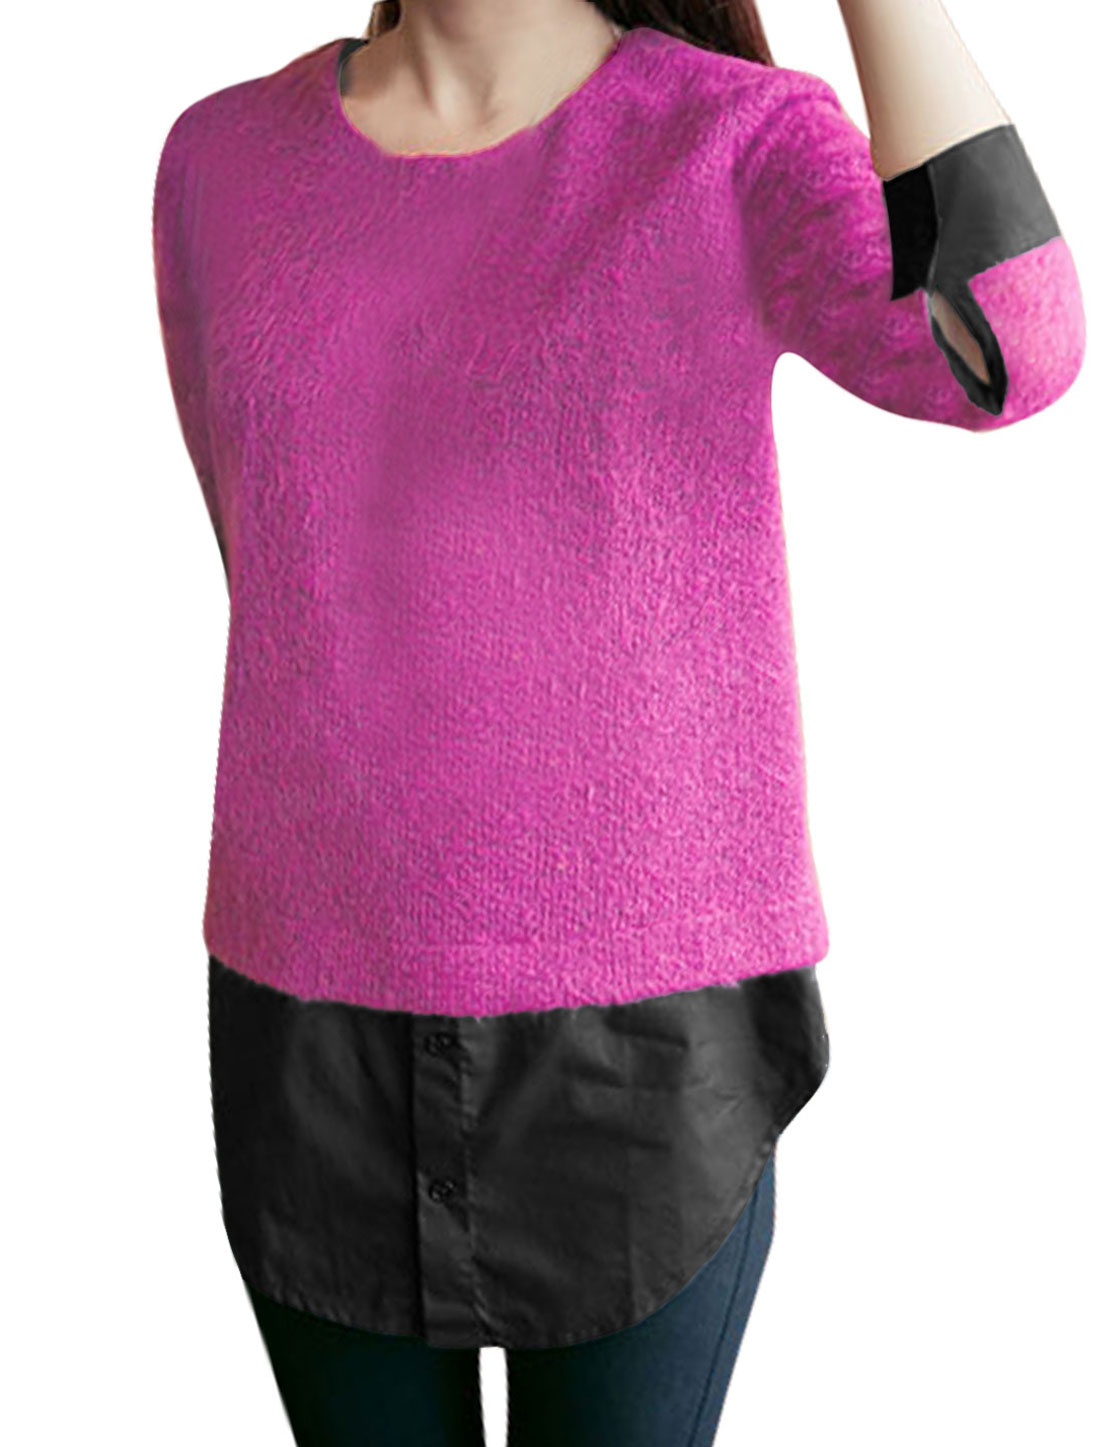 Ladies Long Sleeves Panel Design Fuchsia Tunic Knit Shirt XS